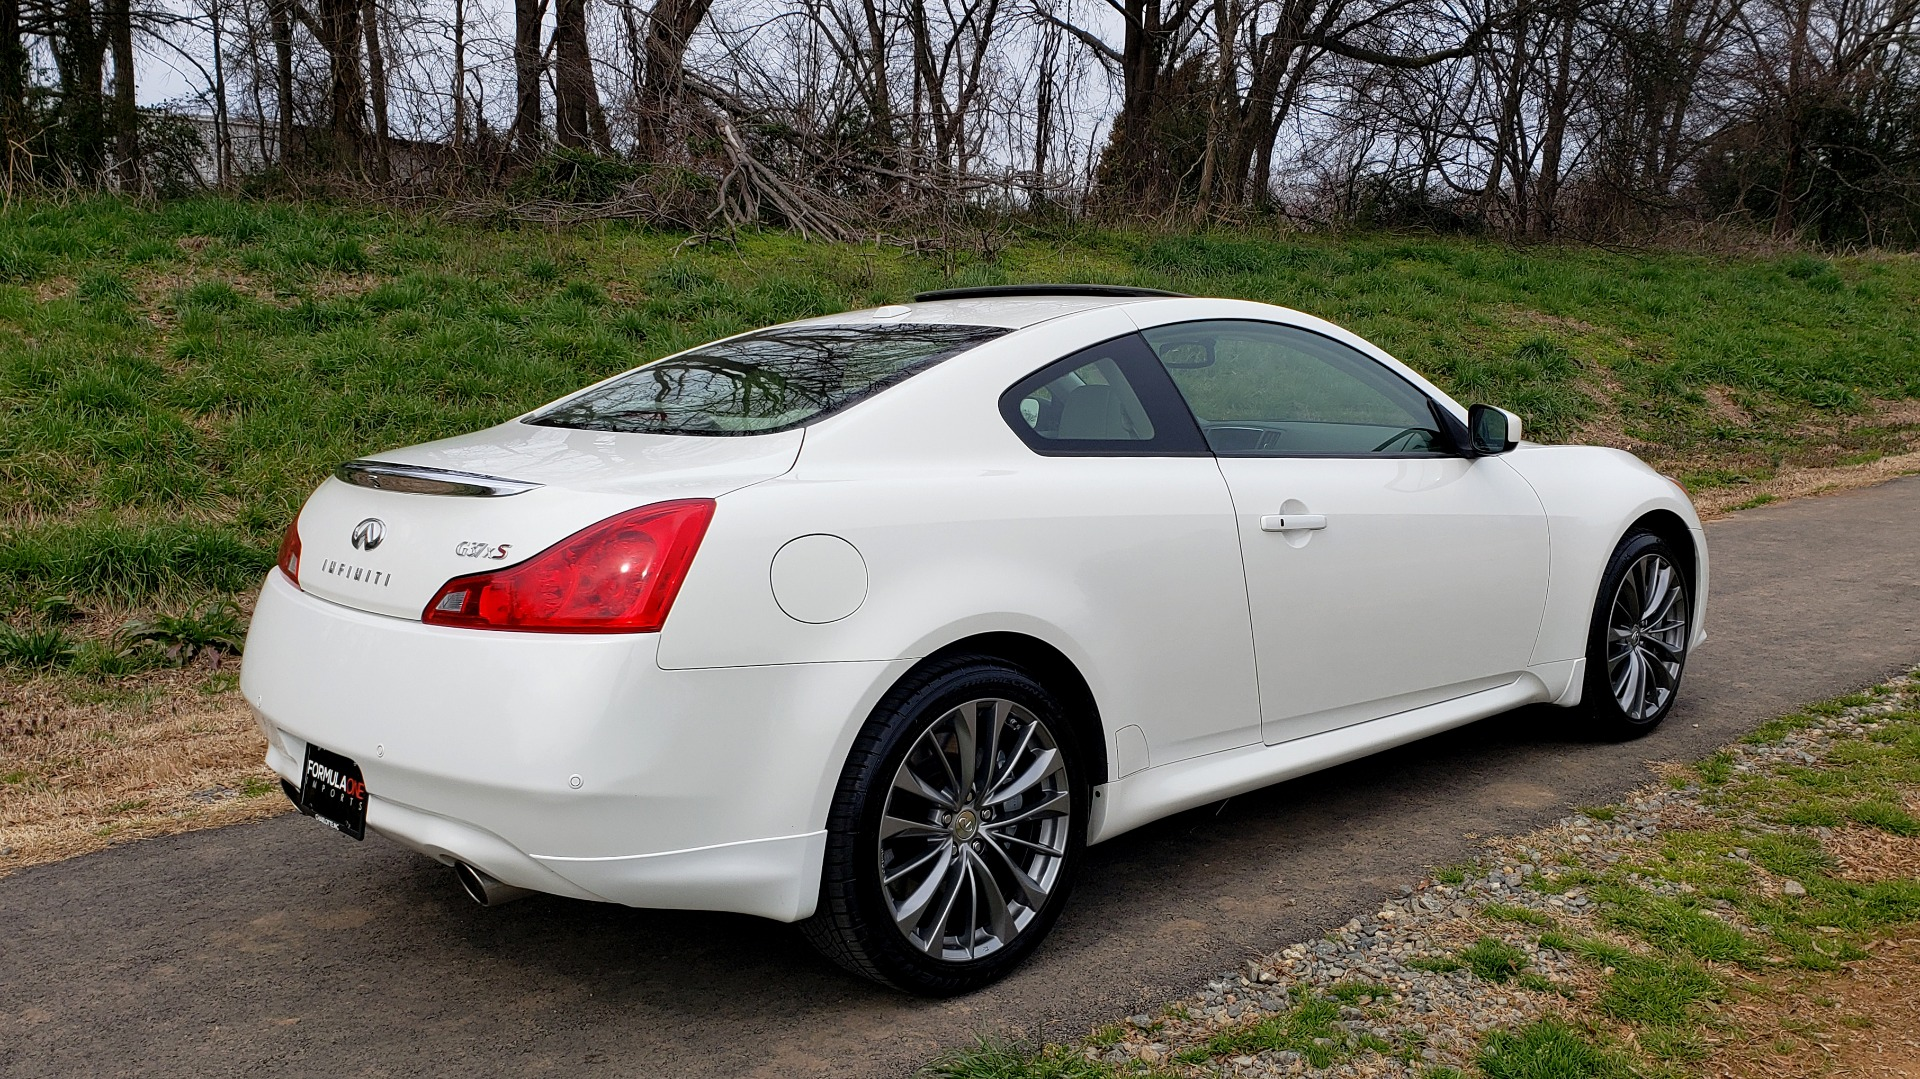 Used 2012 Infiniti G37 Coupe X AWD PREMIUM SPORT PKG / NAV / SUNROOF / REARVIEW for sale Sold at Formula Imports in Charlotte NC 28227 6